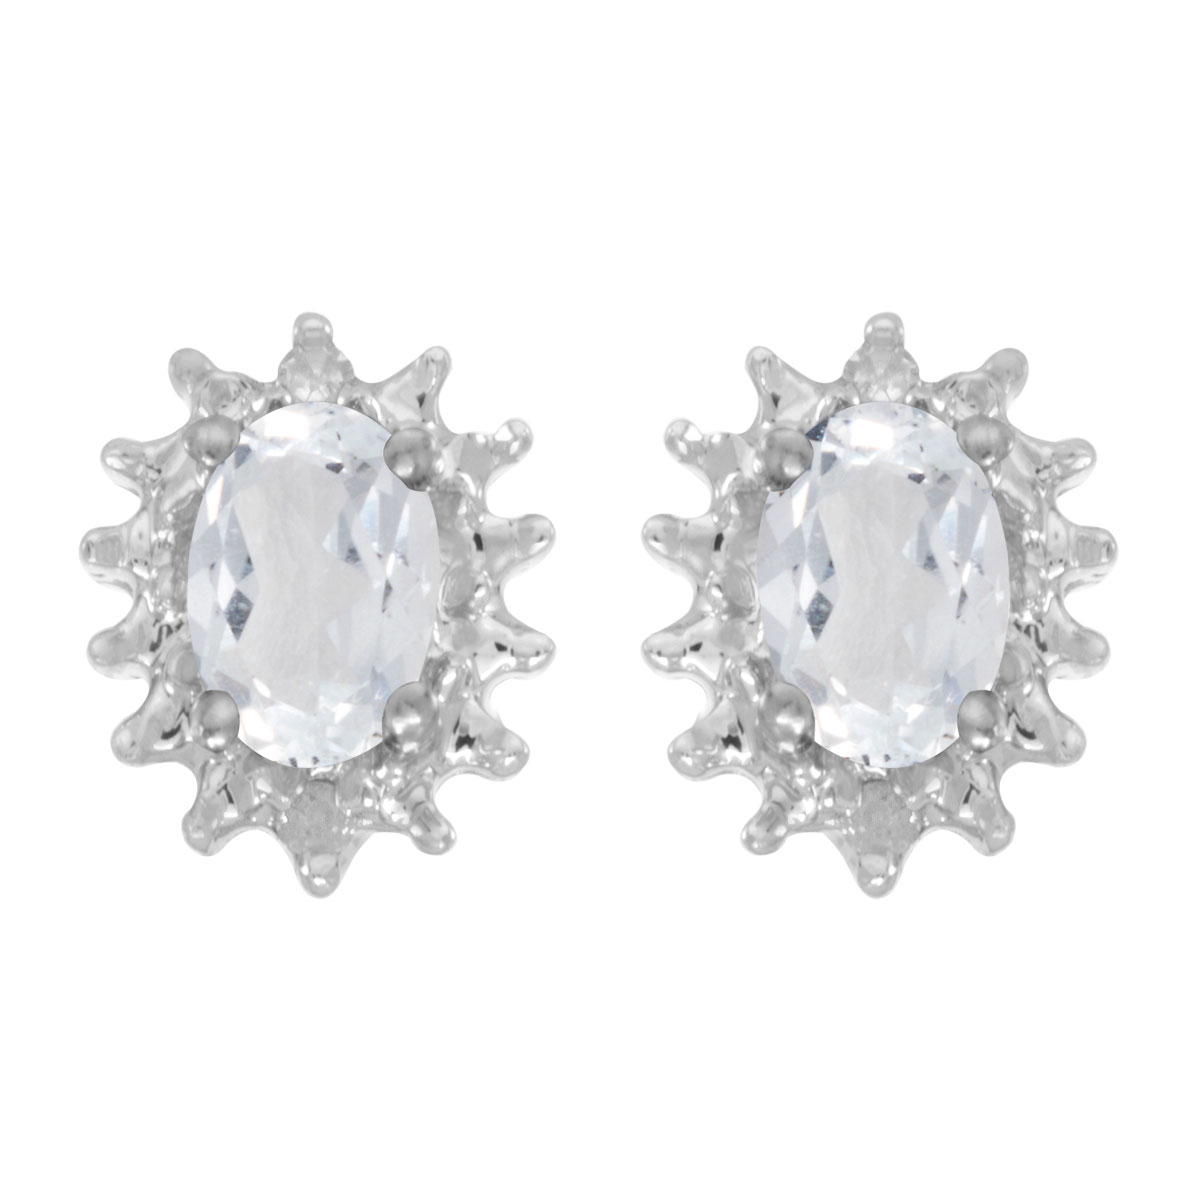 These 14k white gold oval white topaz and diamond earrings feature 6x4 mm genuine natural white topazs with a 0.96 ct total weight and .04 ct diamonds.